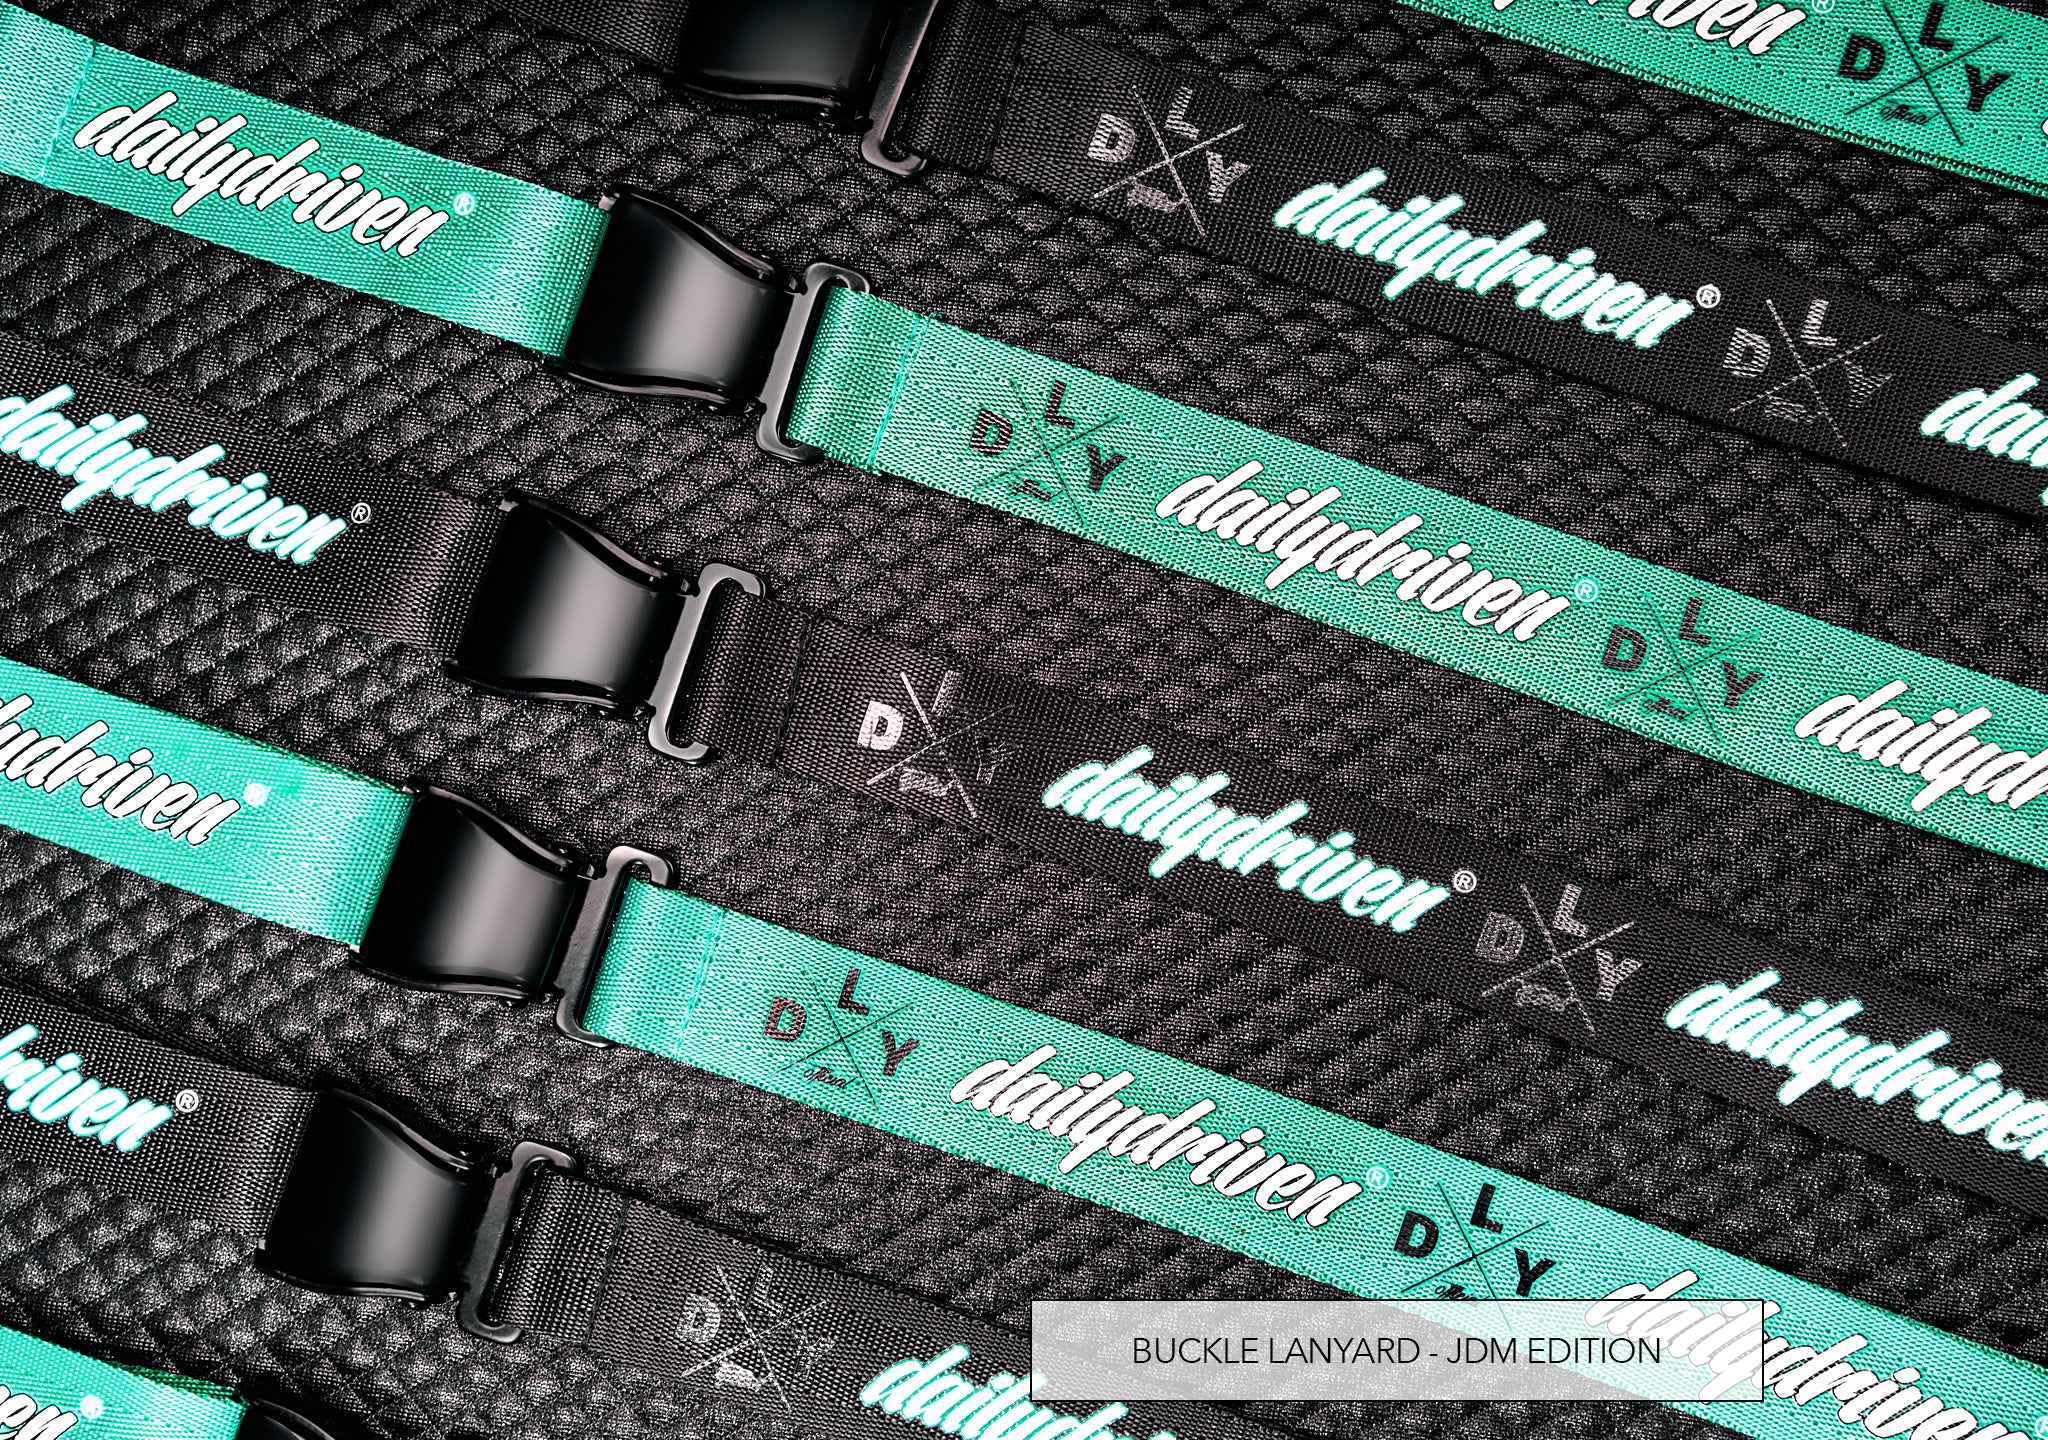 DailyDriven Buckle Lanyard JDM Edition